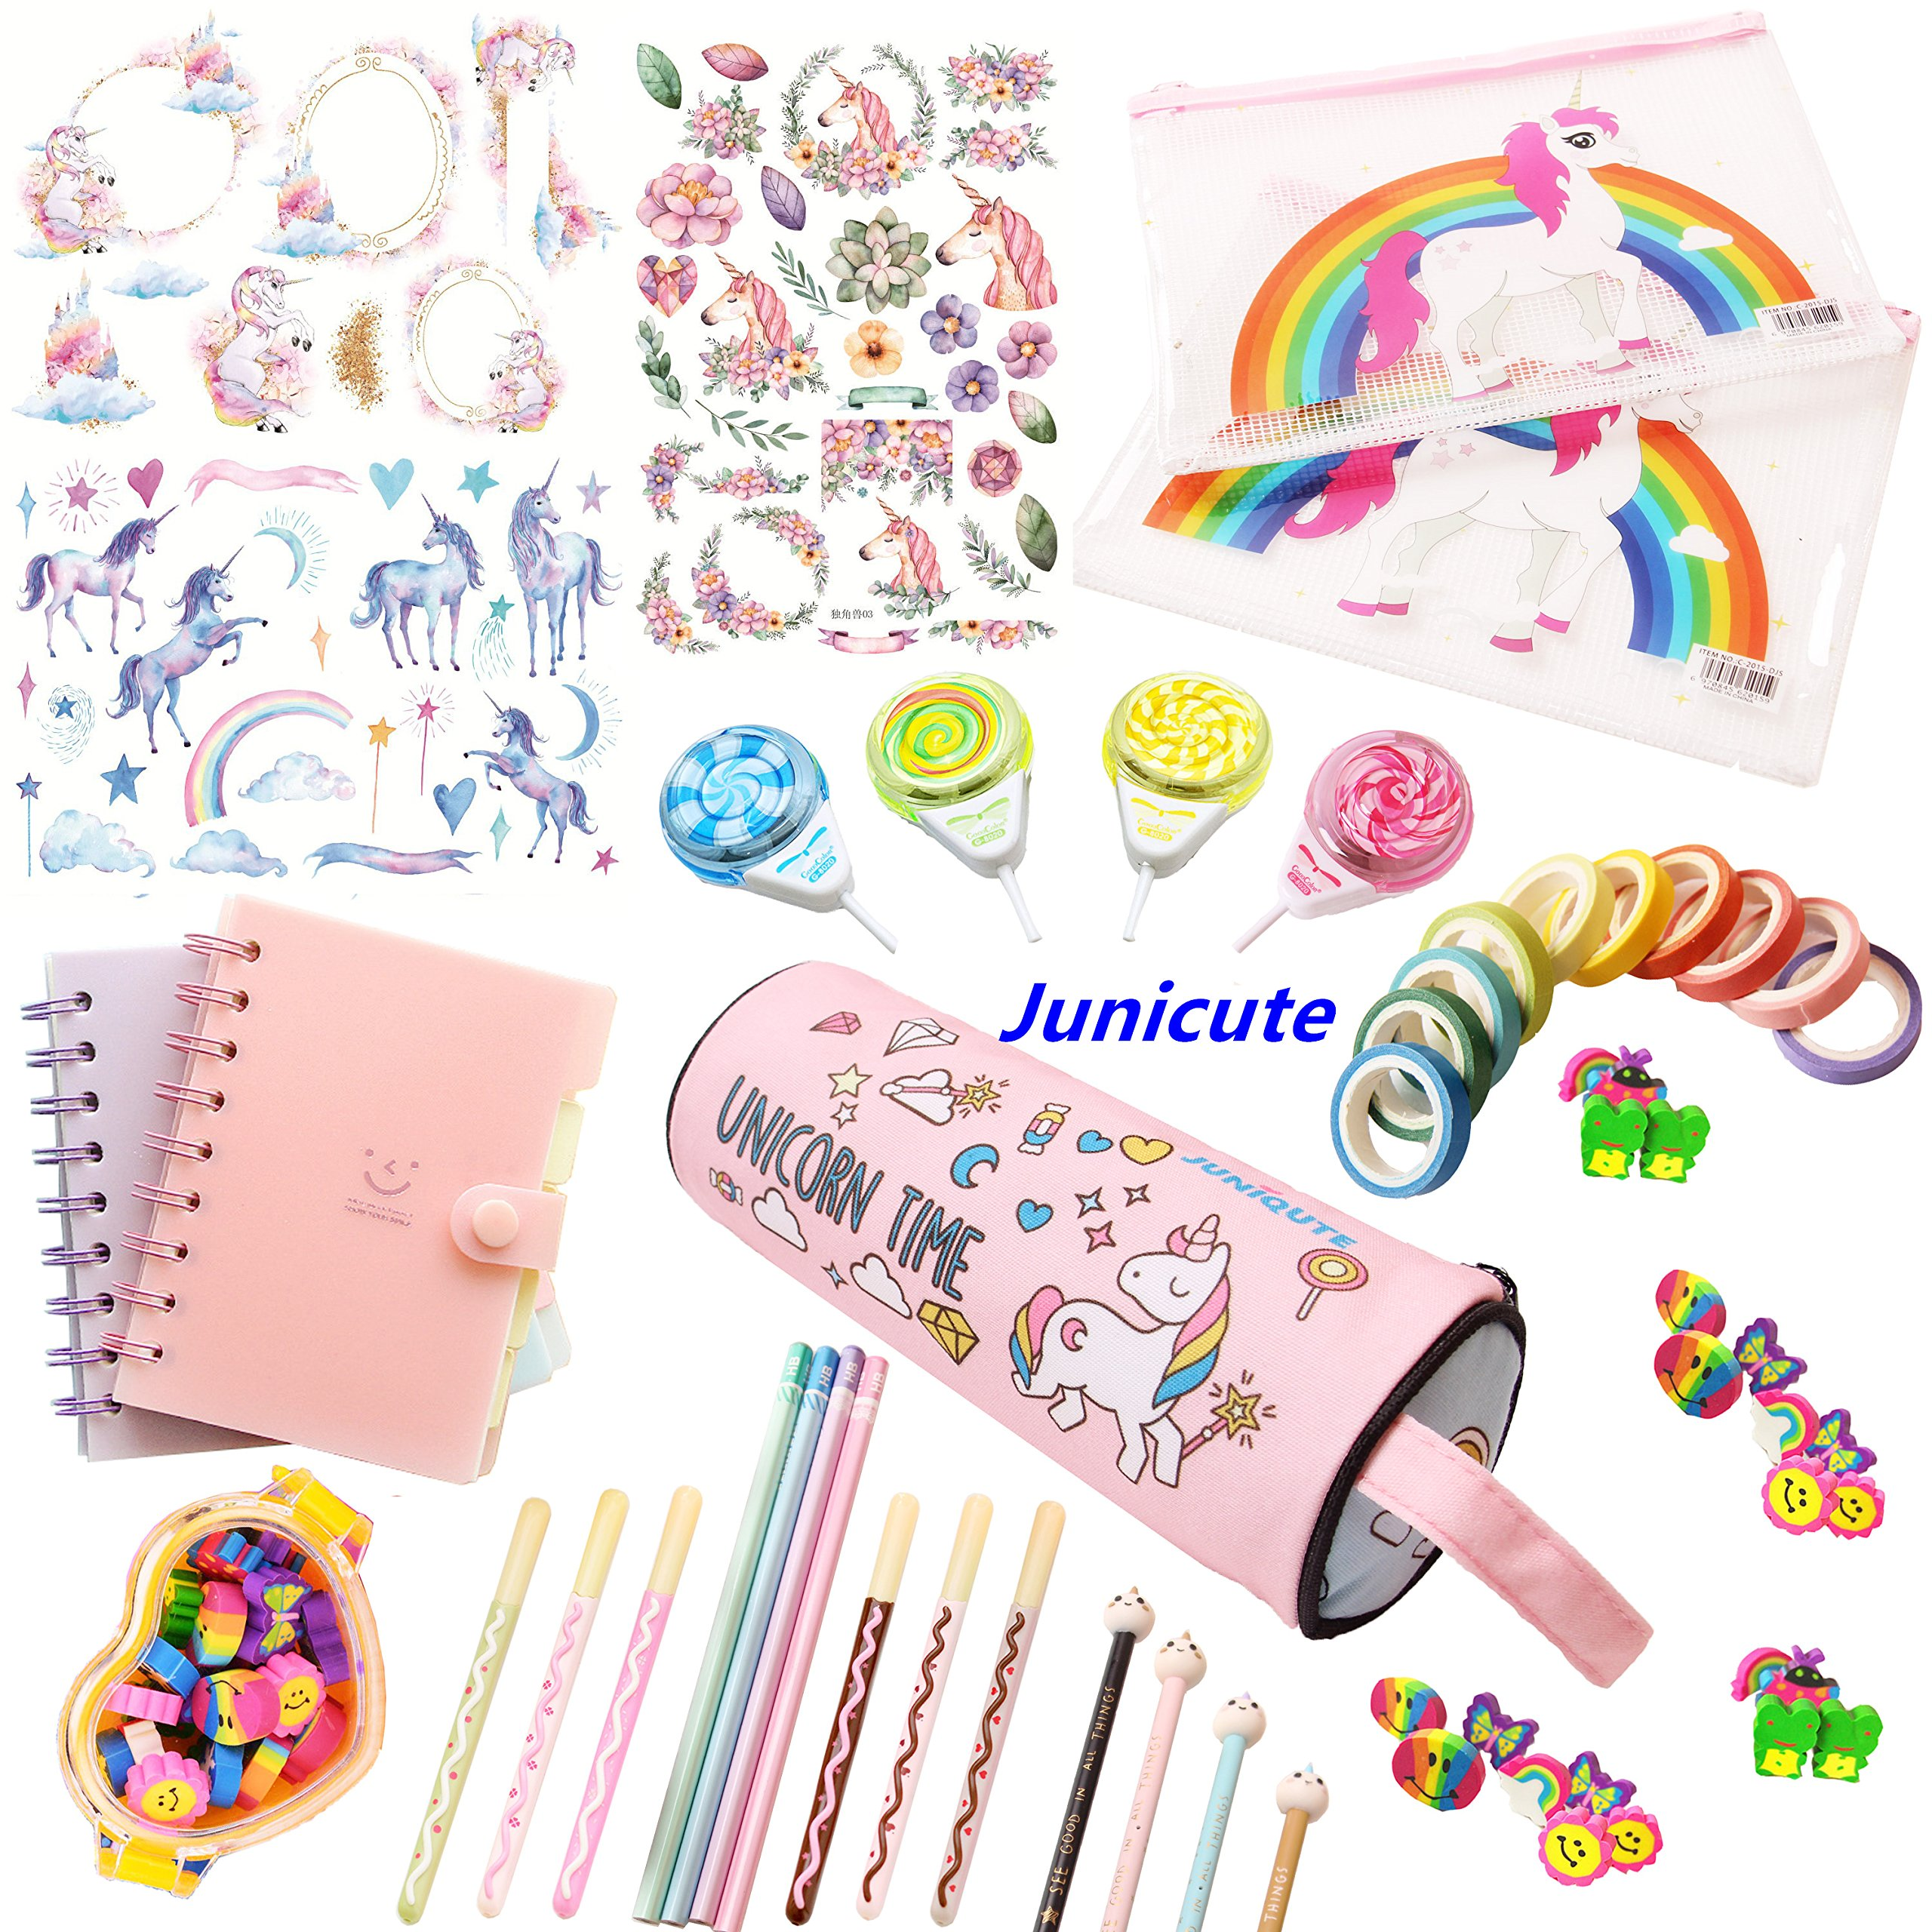 WZ Assorted Unicorn School Supplies Pen Pencil Case Eraser Note Stationery Gift Set (48Pcs) by WZ